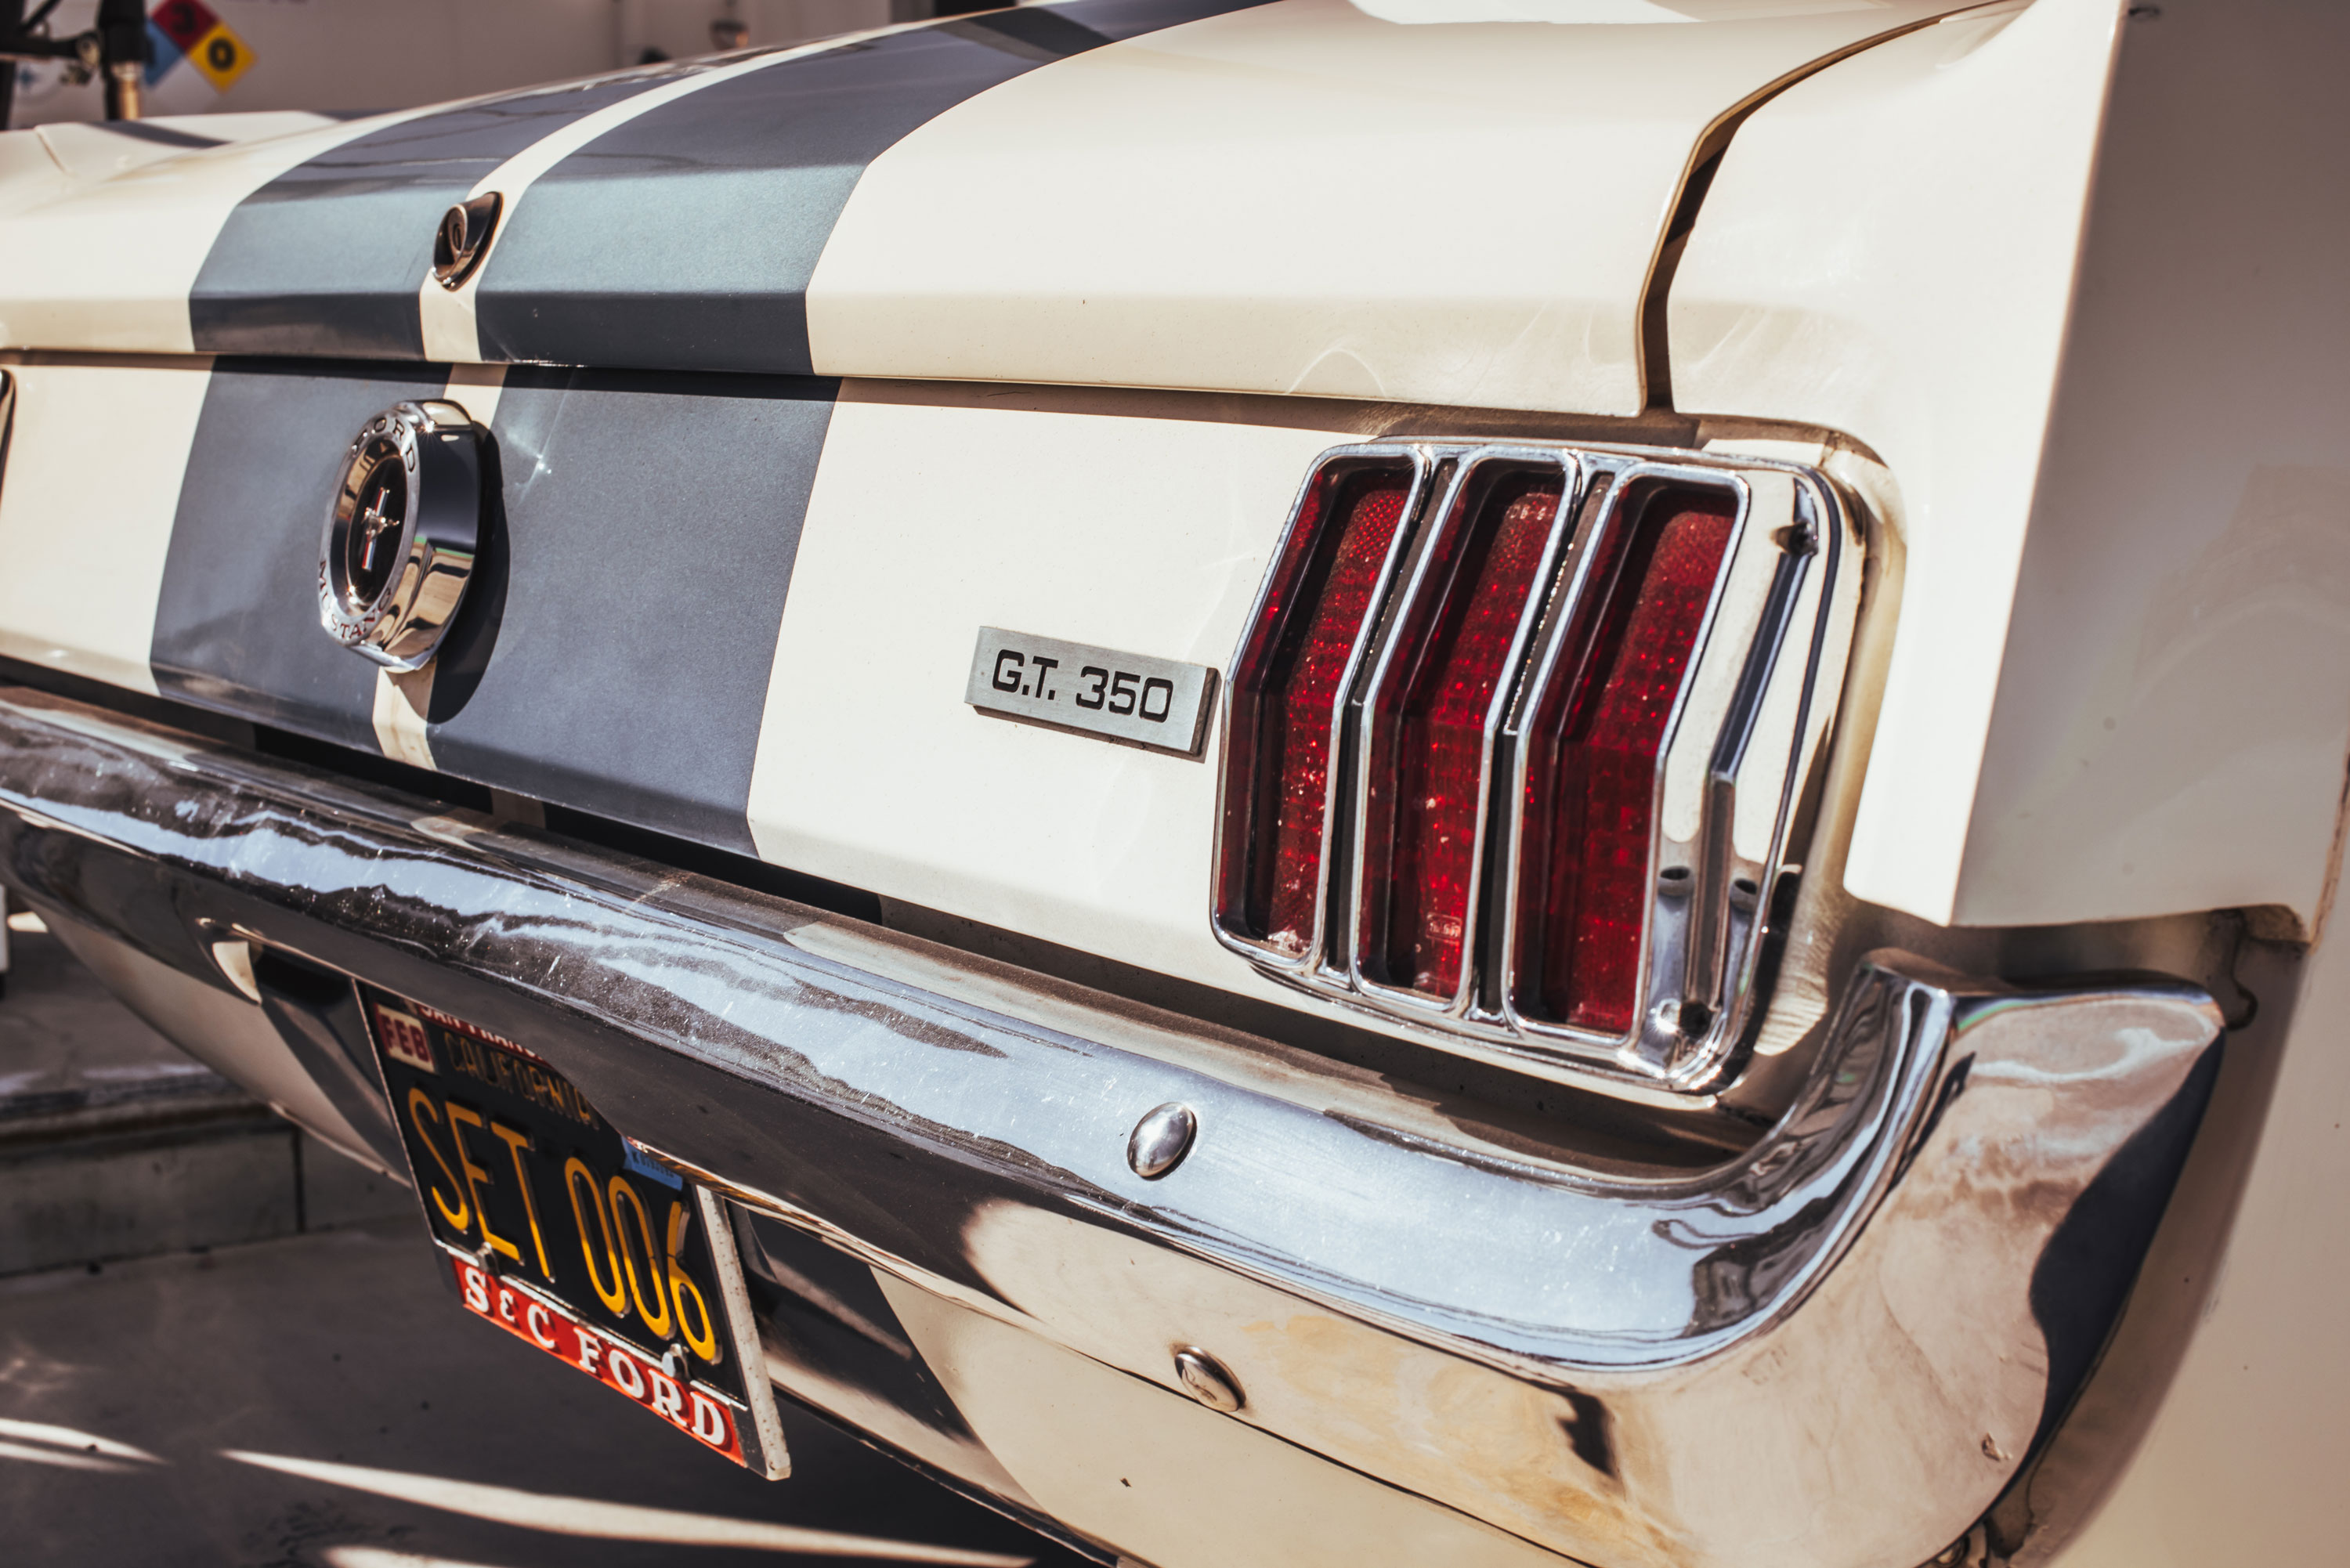 1965 Shelby GT350 Mustang taillight detail